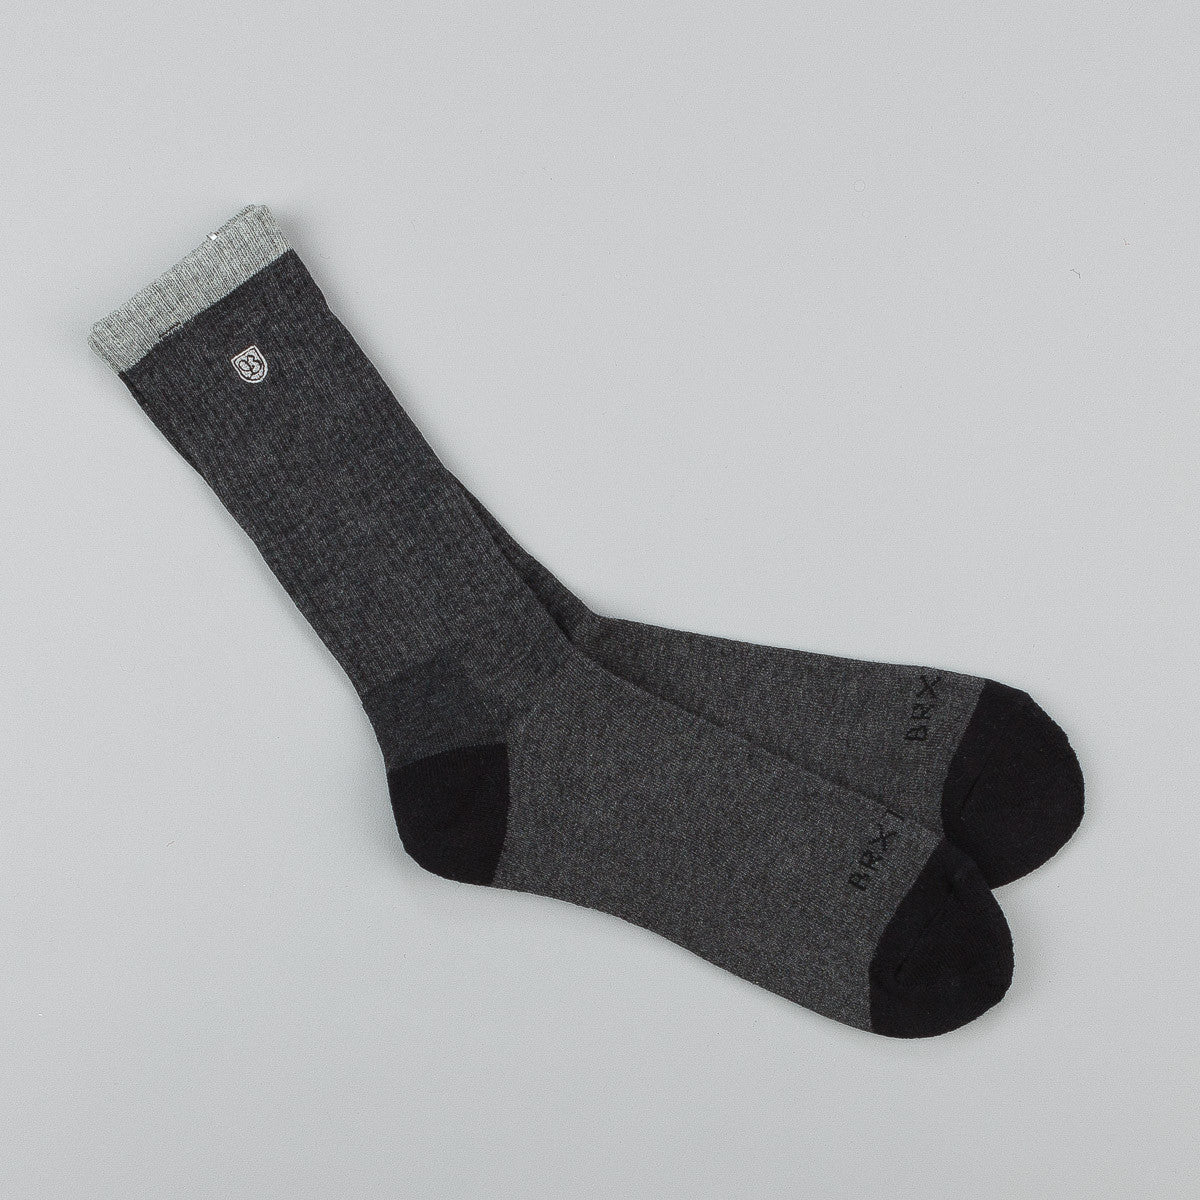 Brixton Warren Socks - Black / Charcoal